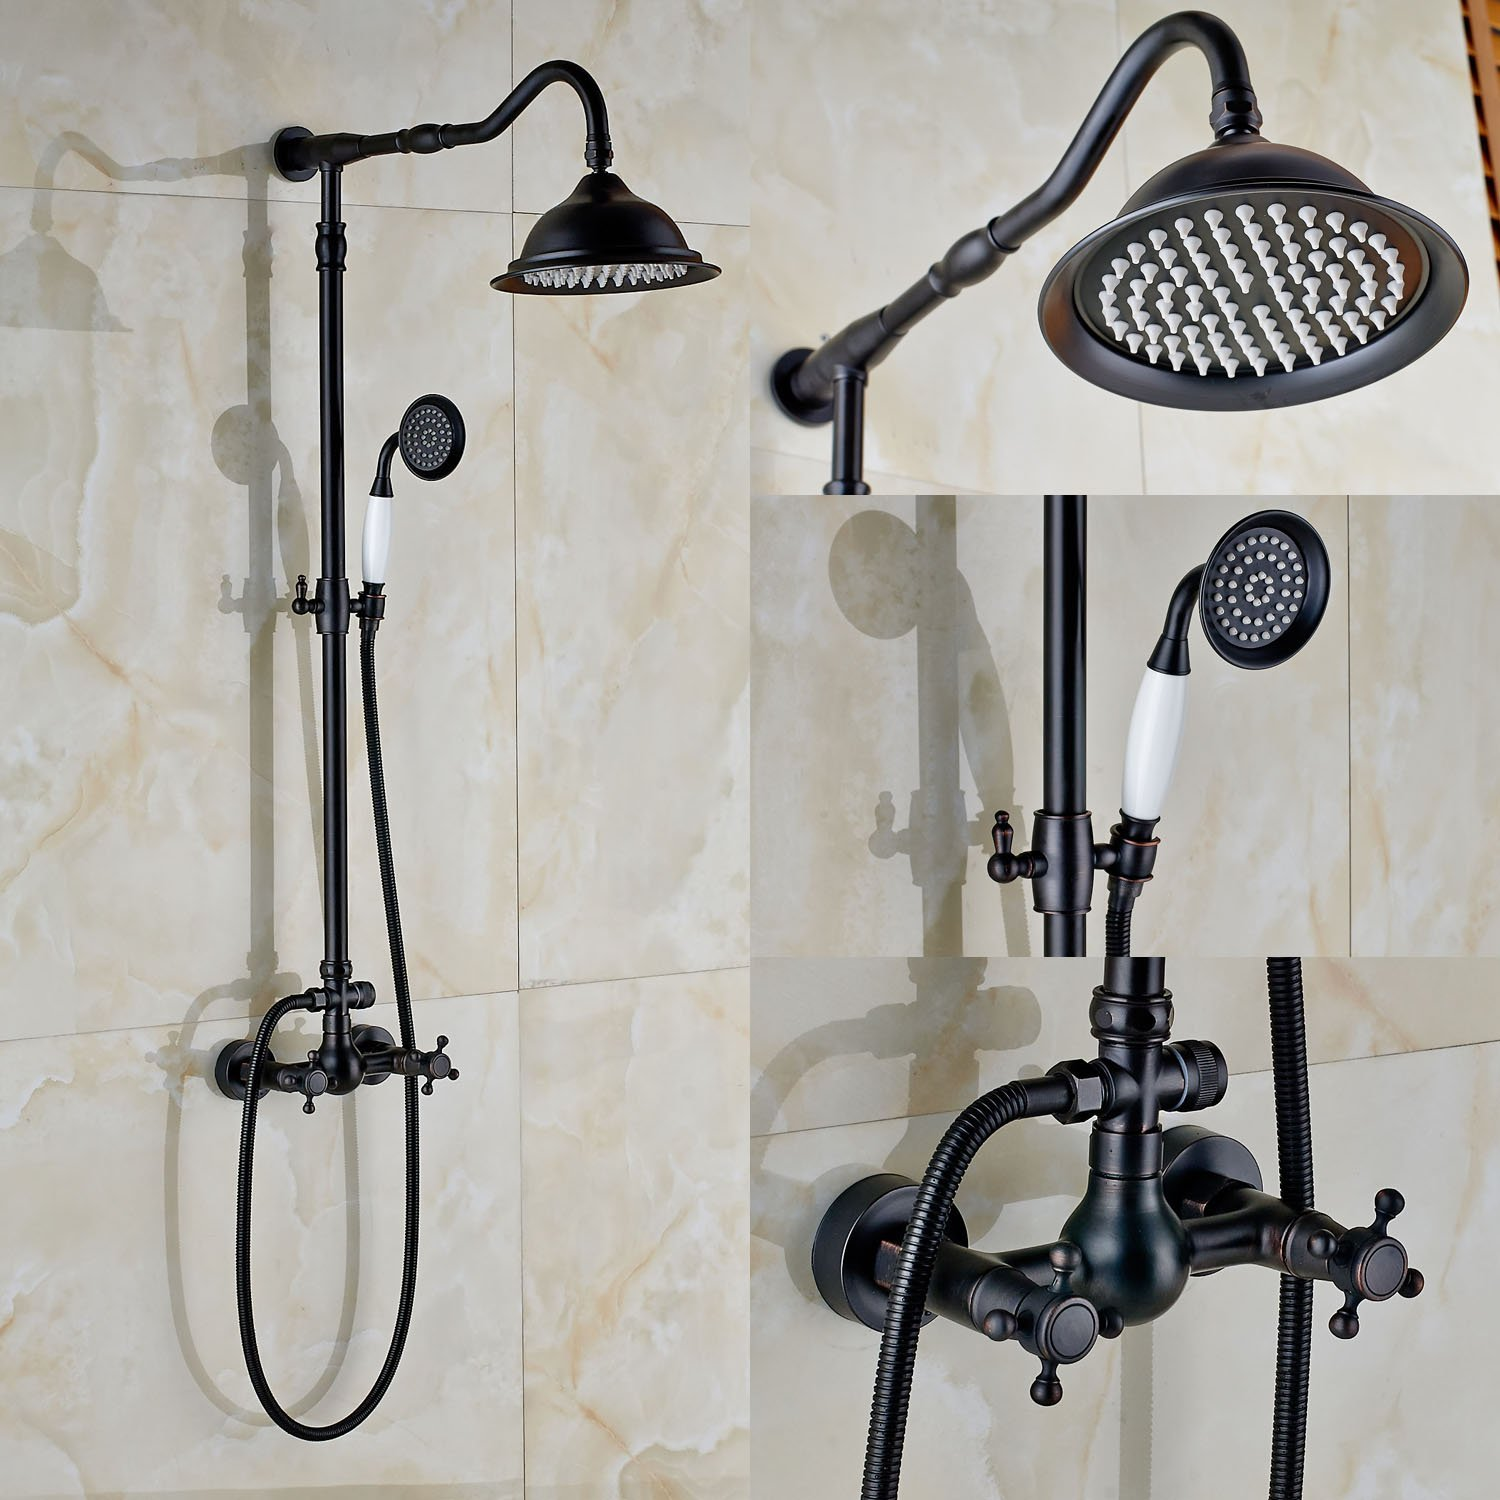 lg furniture htm dual shower head and fixed croydex hose with taps qs adapter rain arm traditional bathroom set